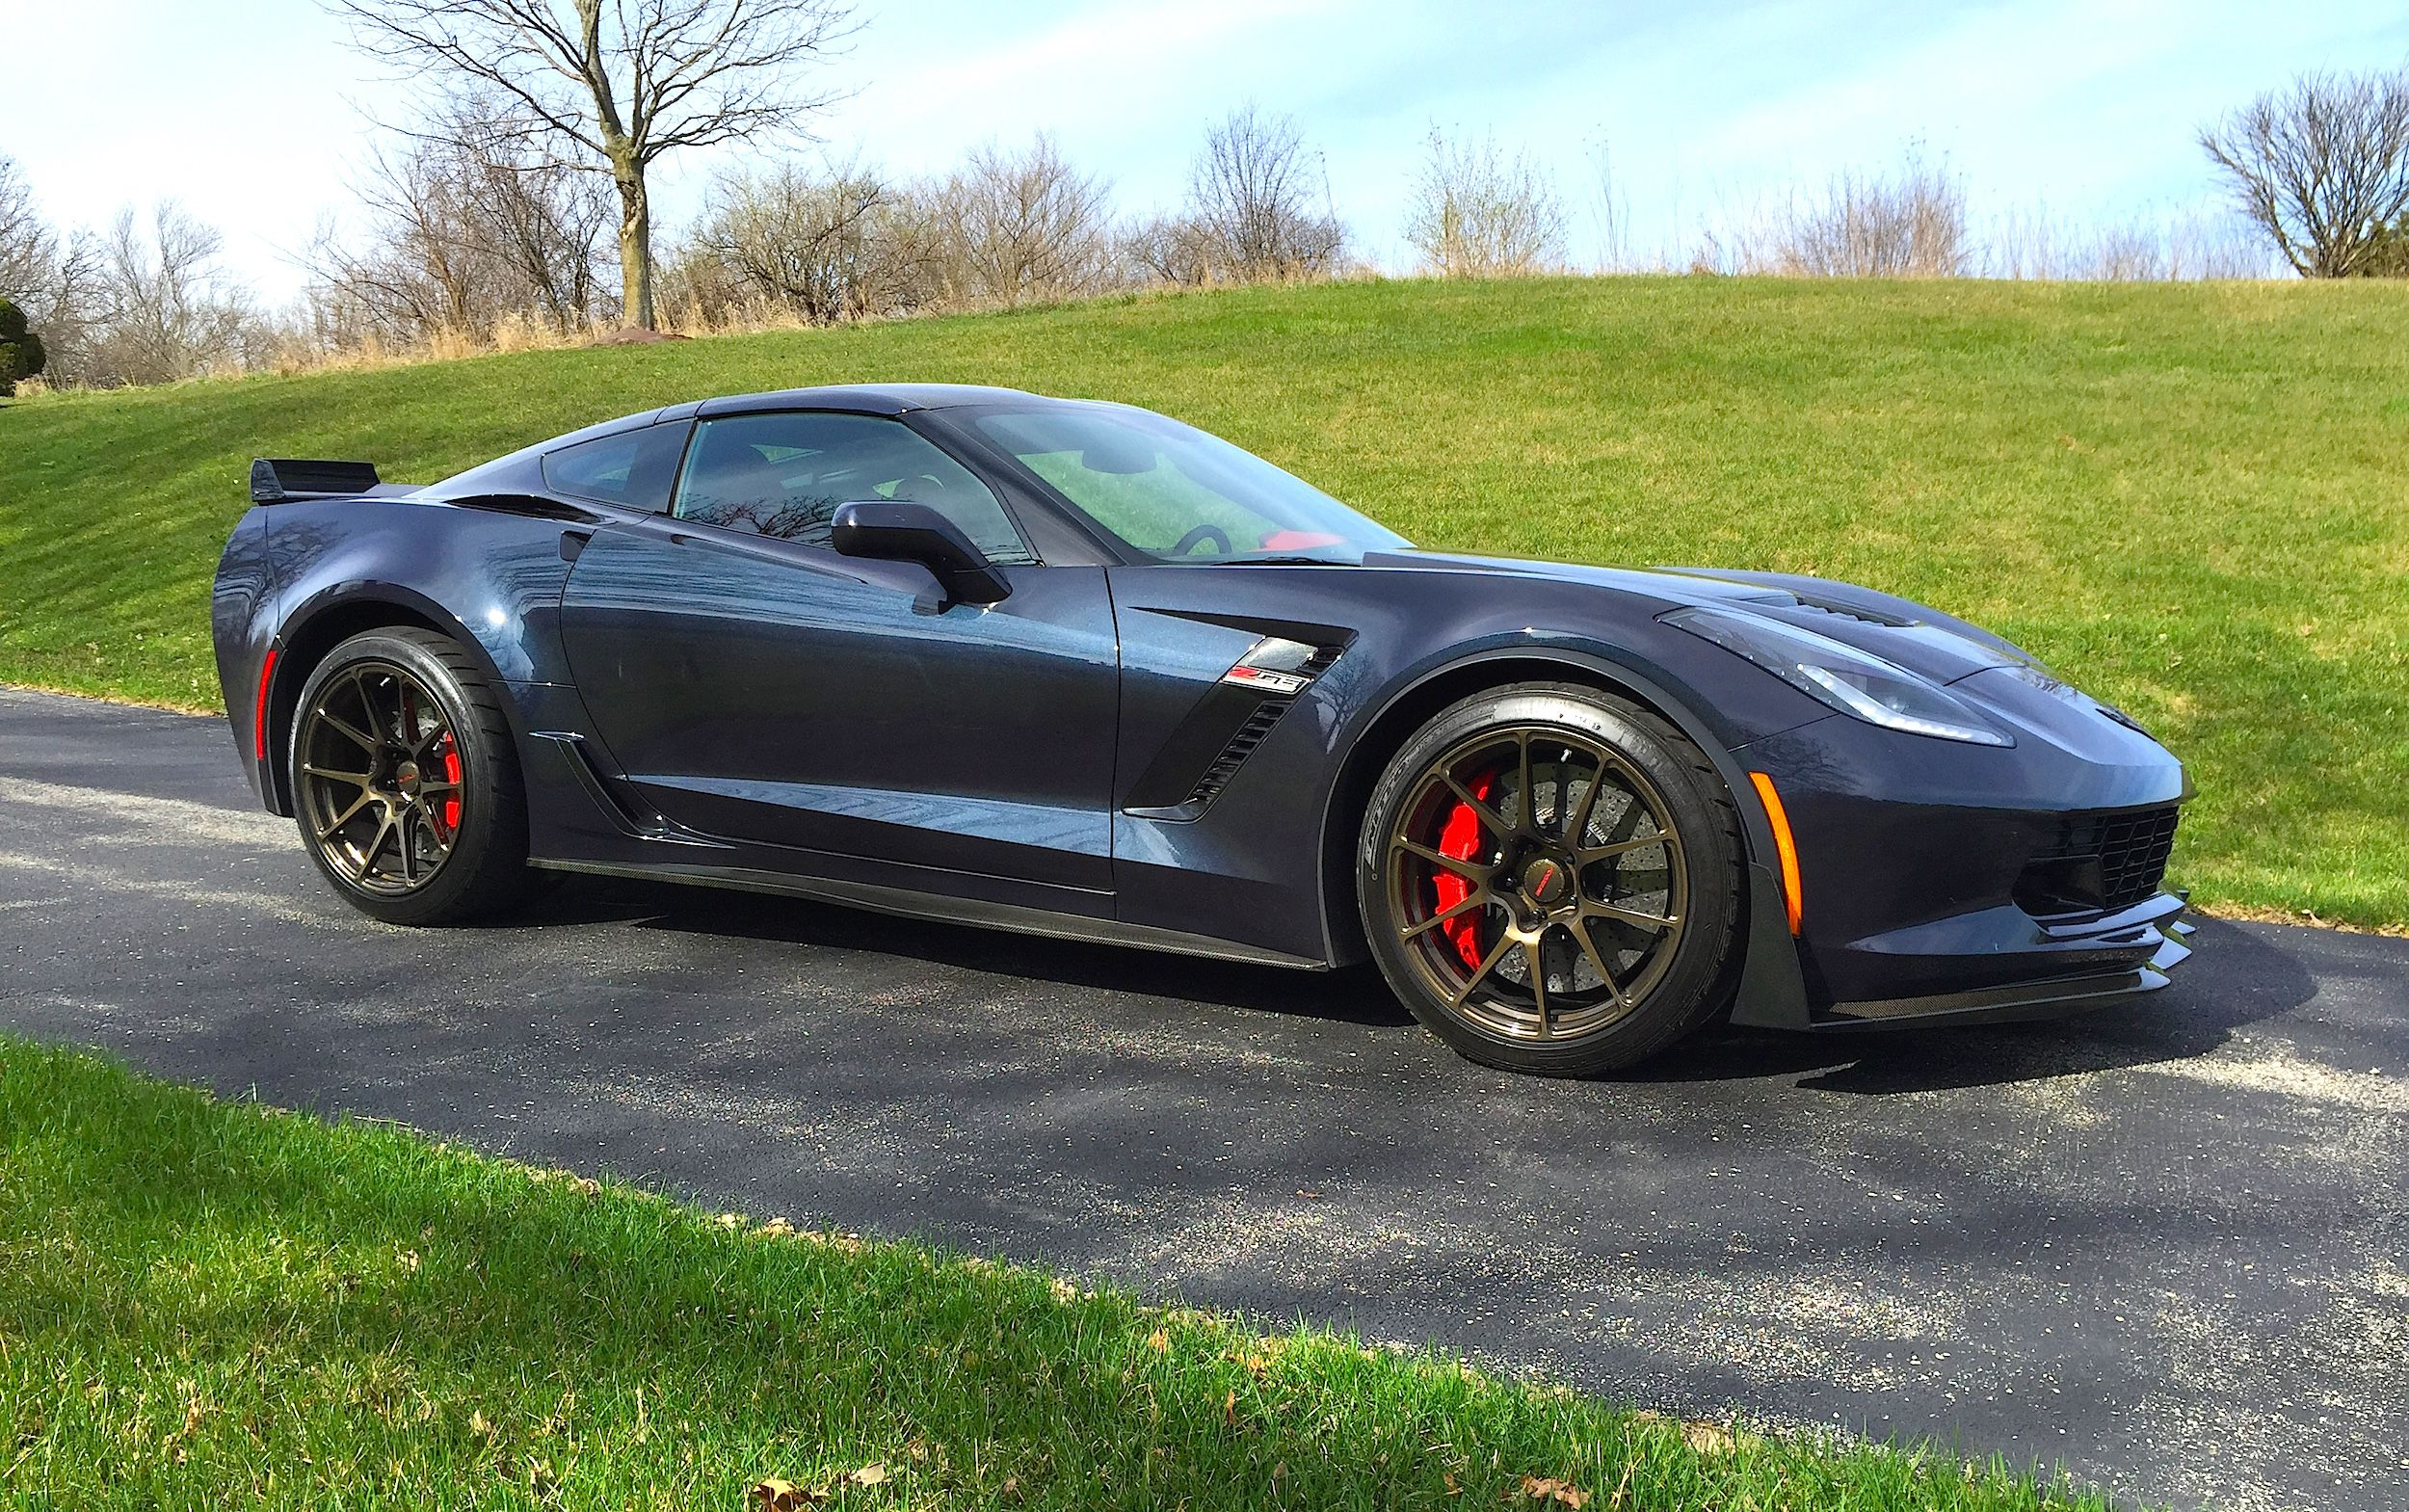 Our friends at schwartzperf just picked up their own c7 z06 corvette with the z07